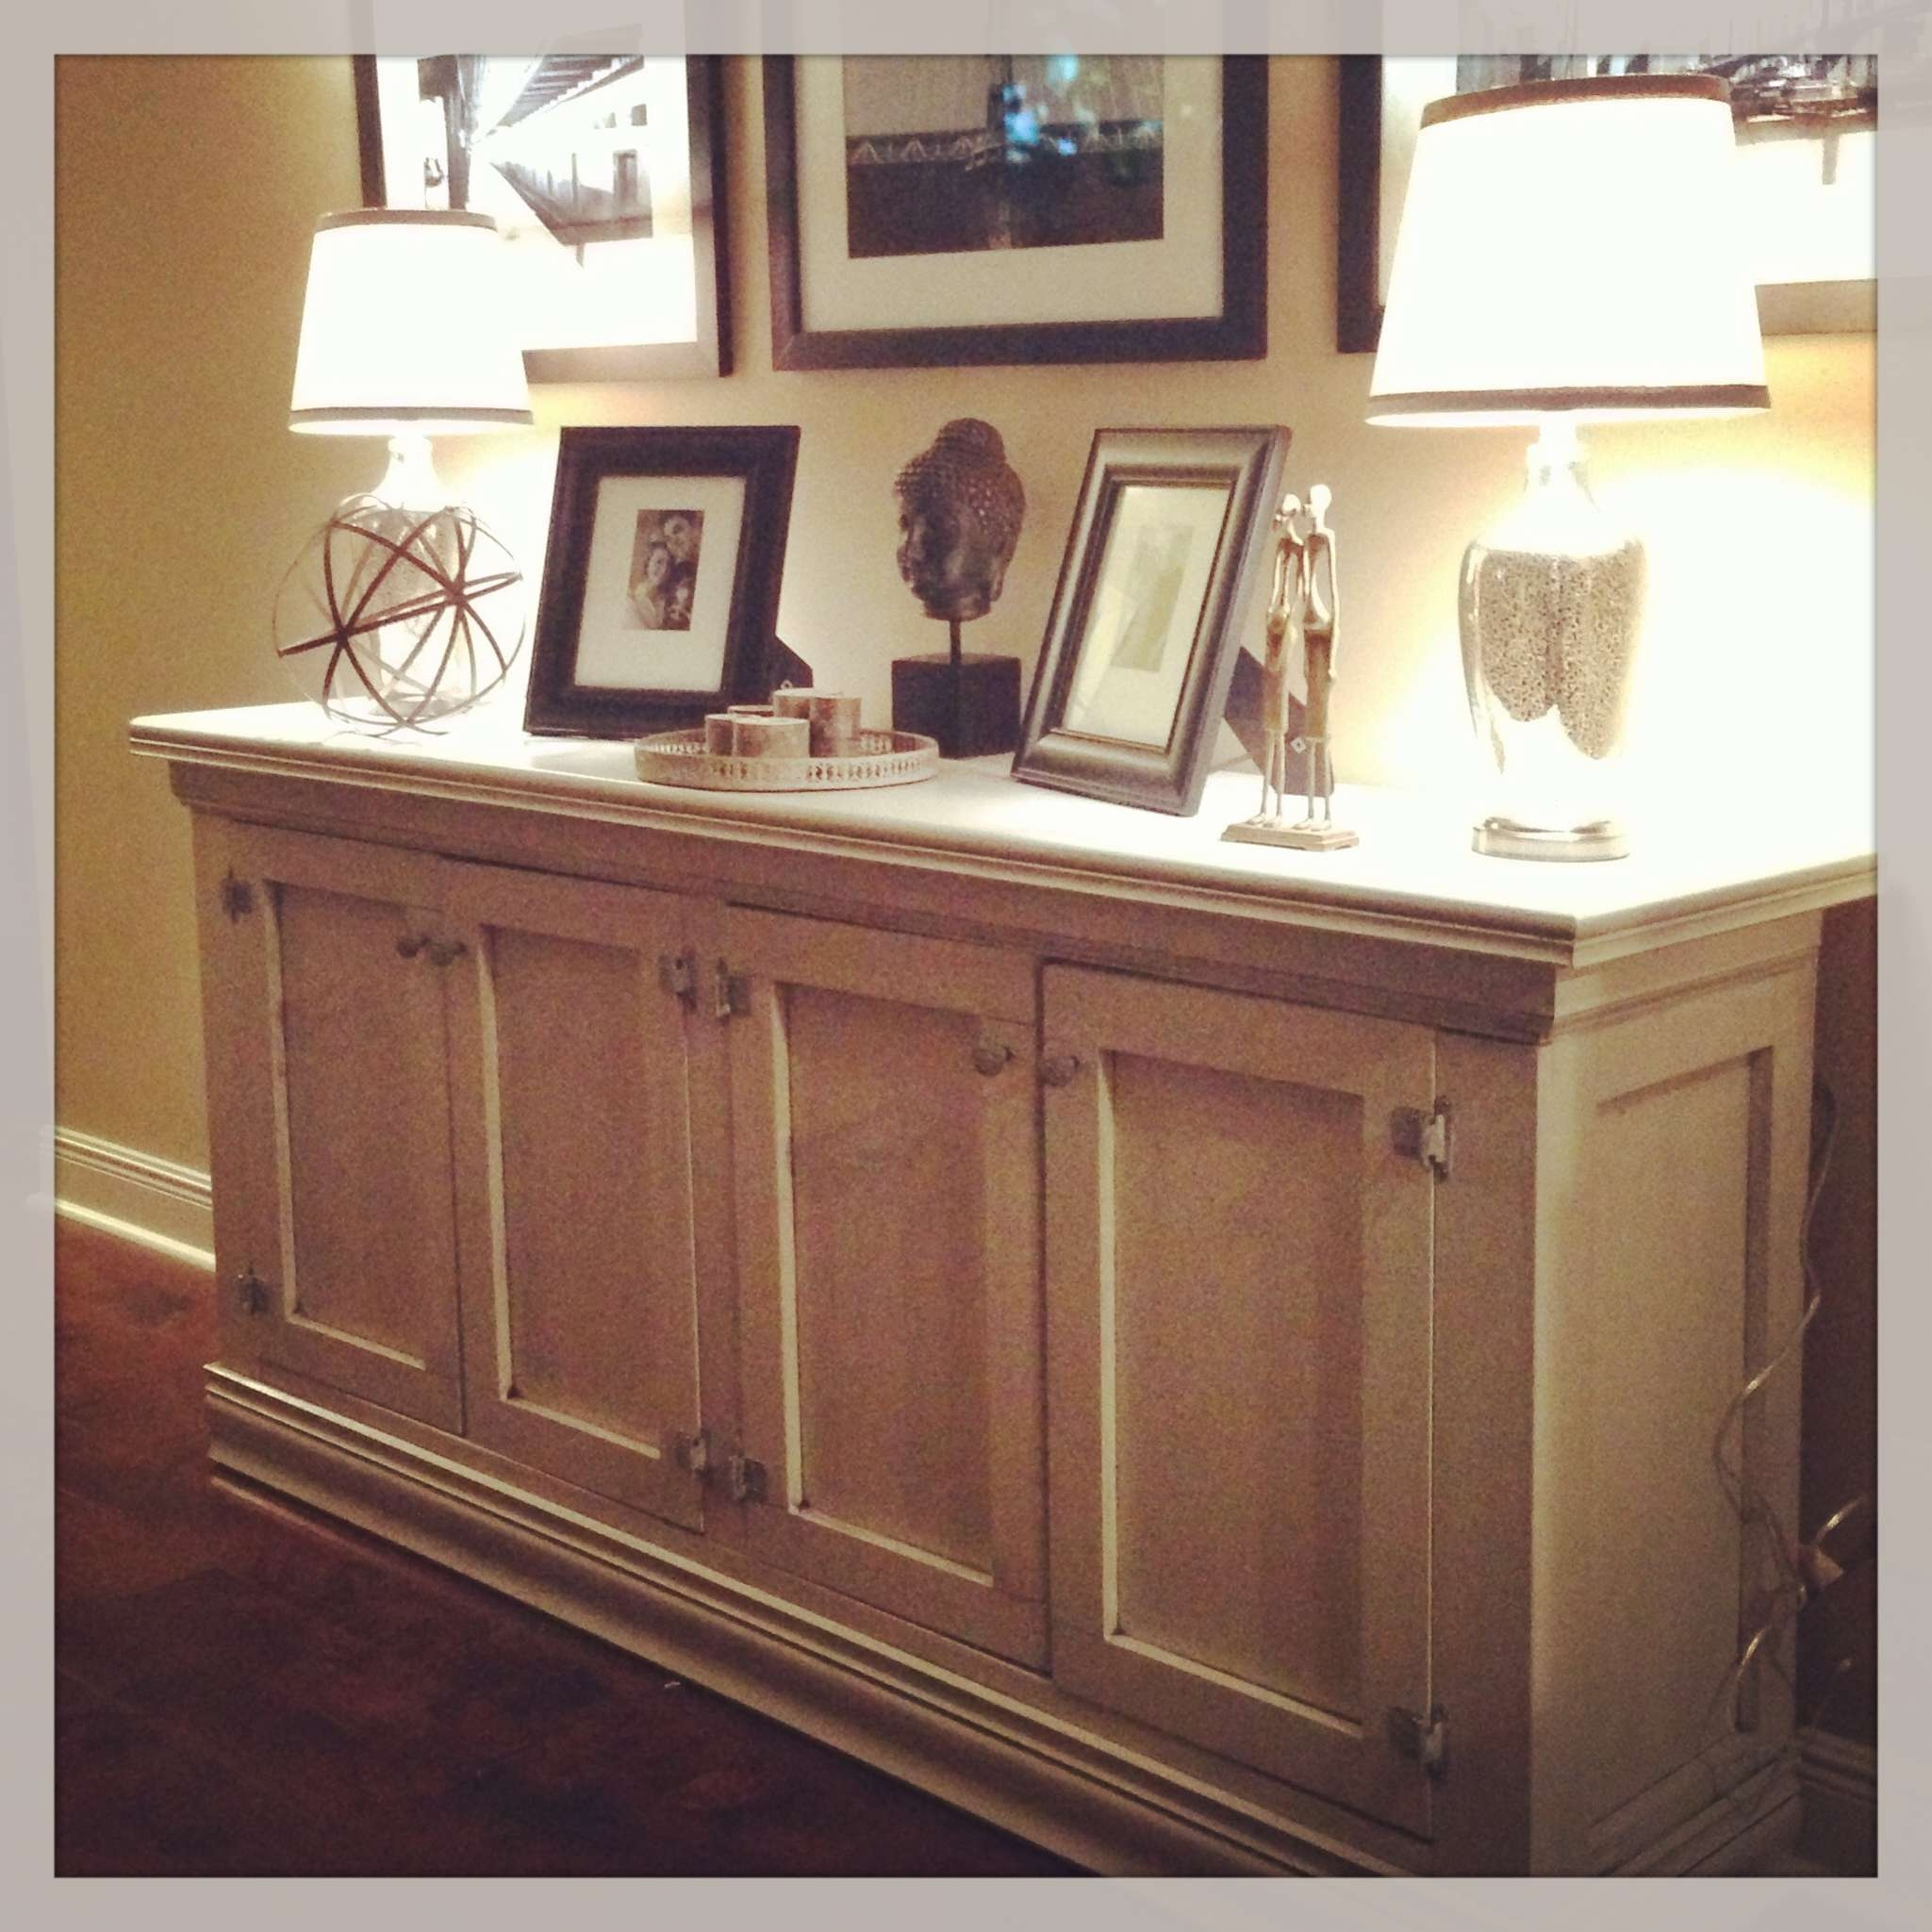 Buffet Or Sideboard Best Of And Diy Sideboard The Sweet Life Regarding Buffet Server Sideboards (View 4 of 20)